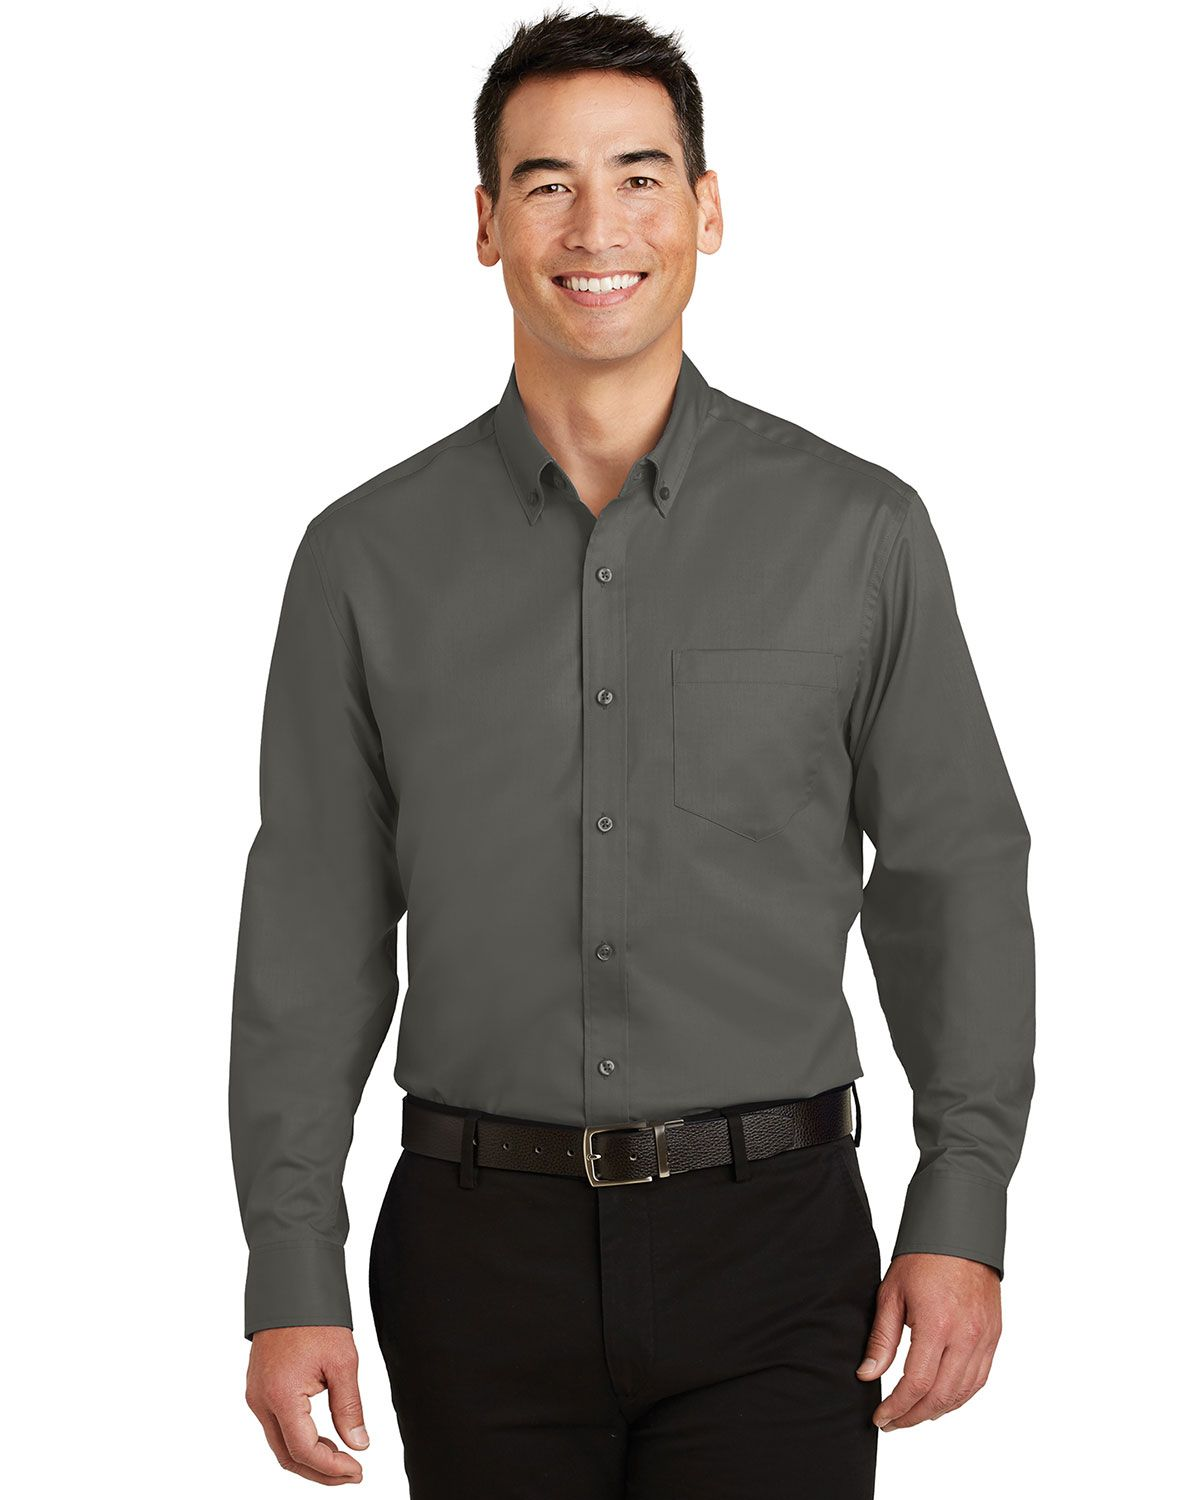 Port Authority TS663 Men's Tall SuperPro Twill Shirt - Sterling Grey - LT from Port Authority